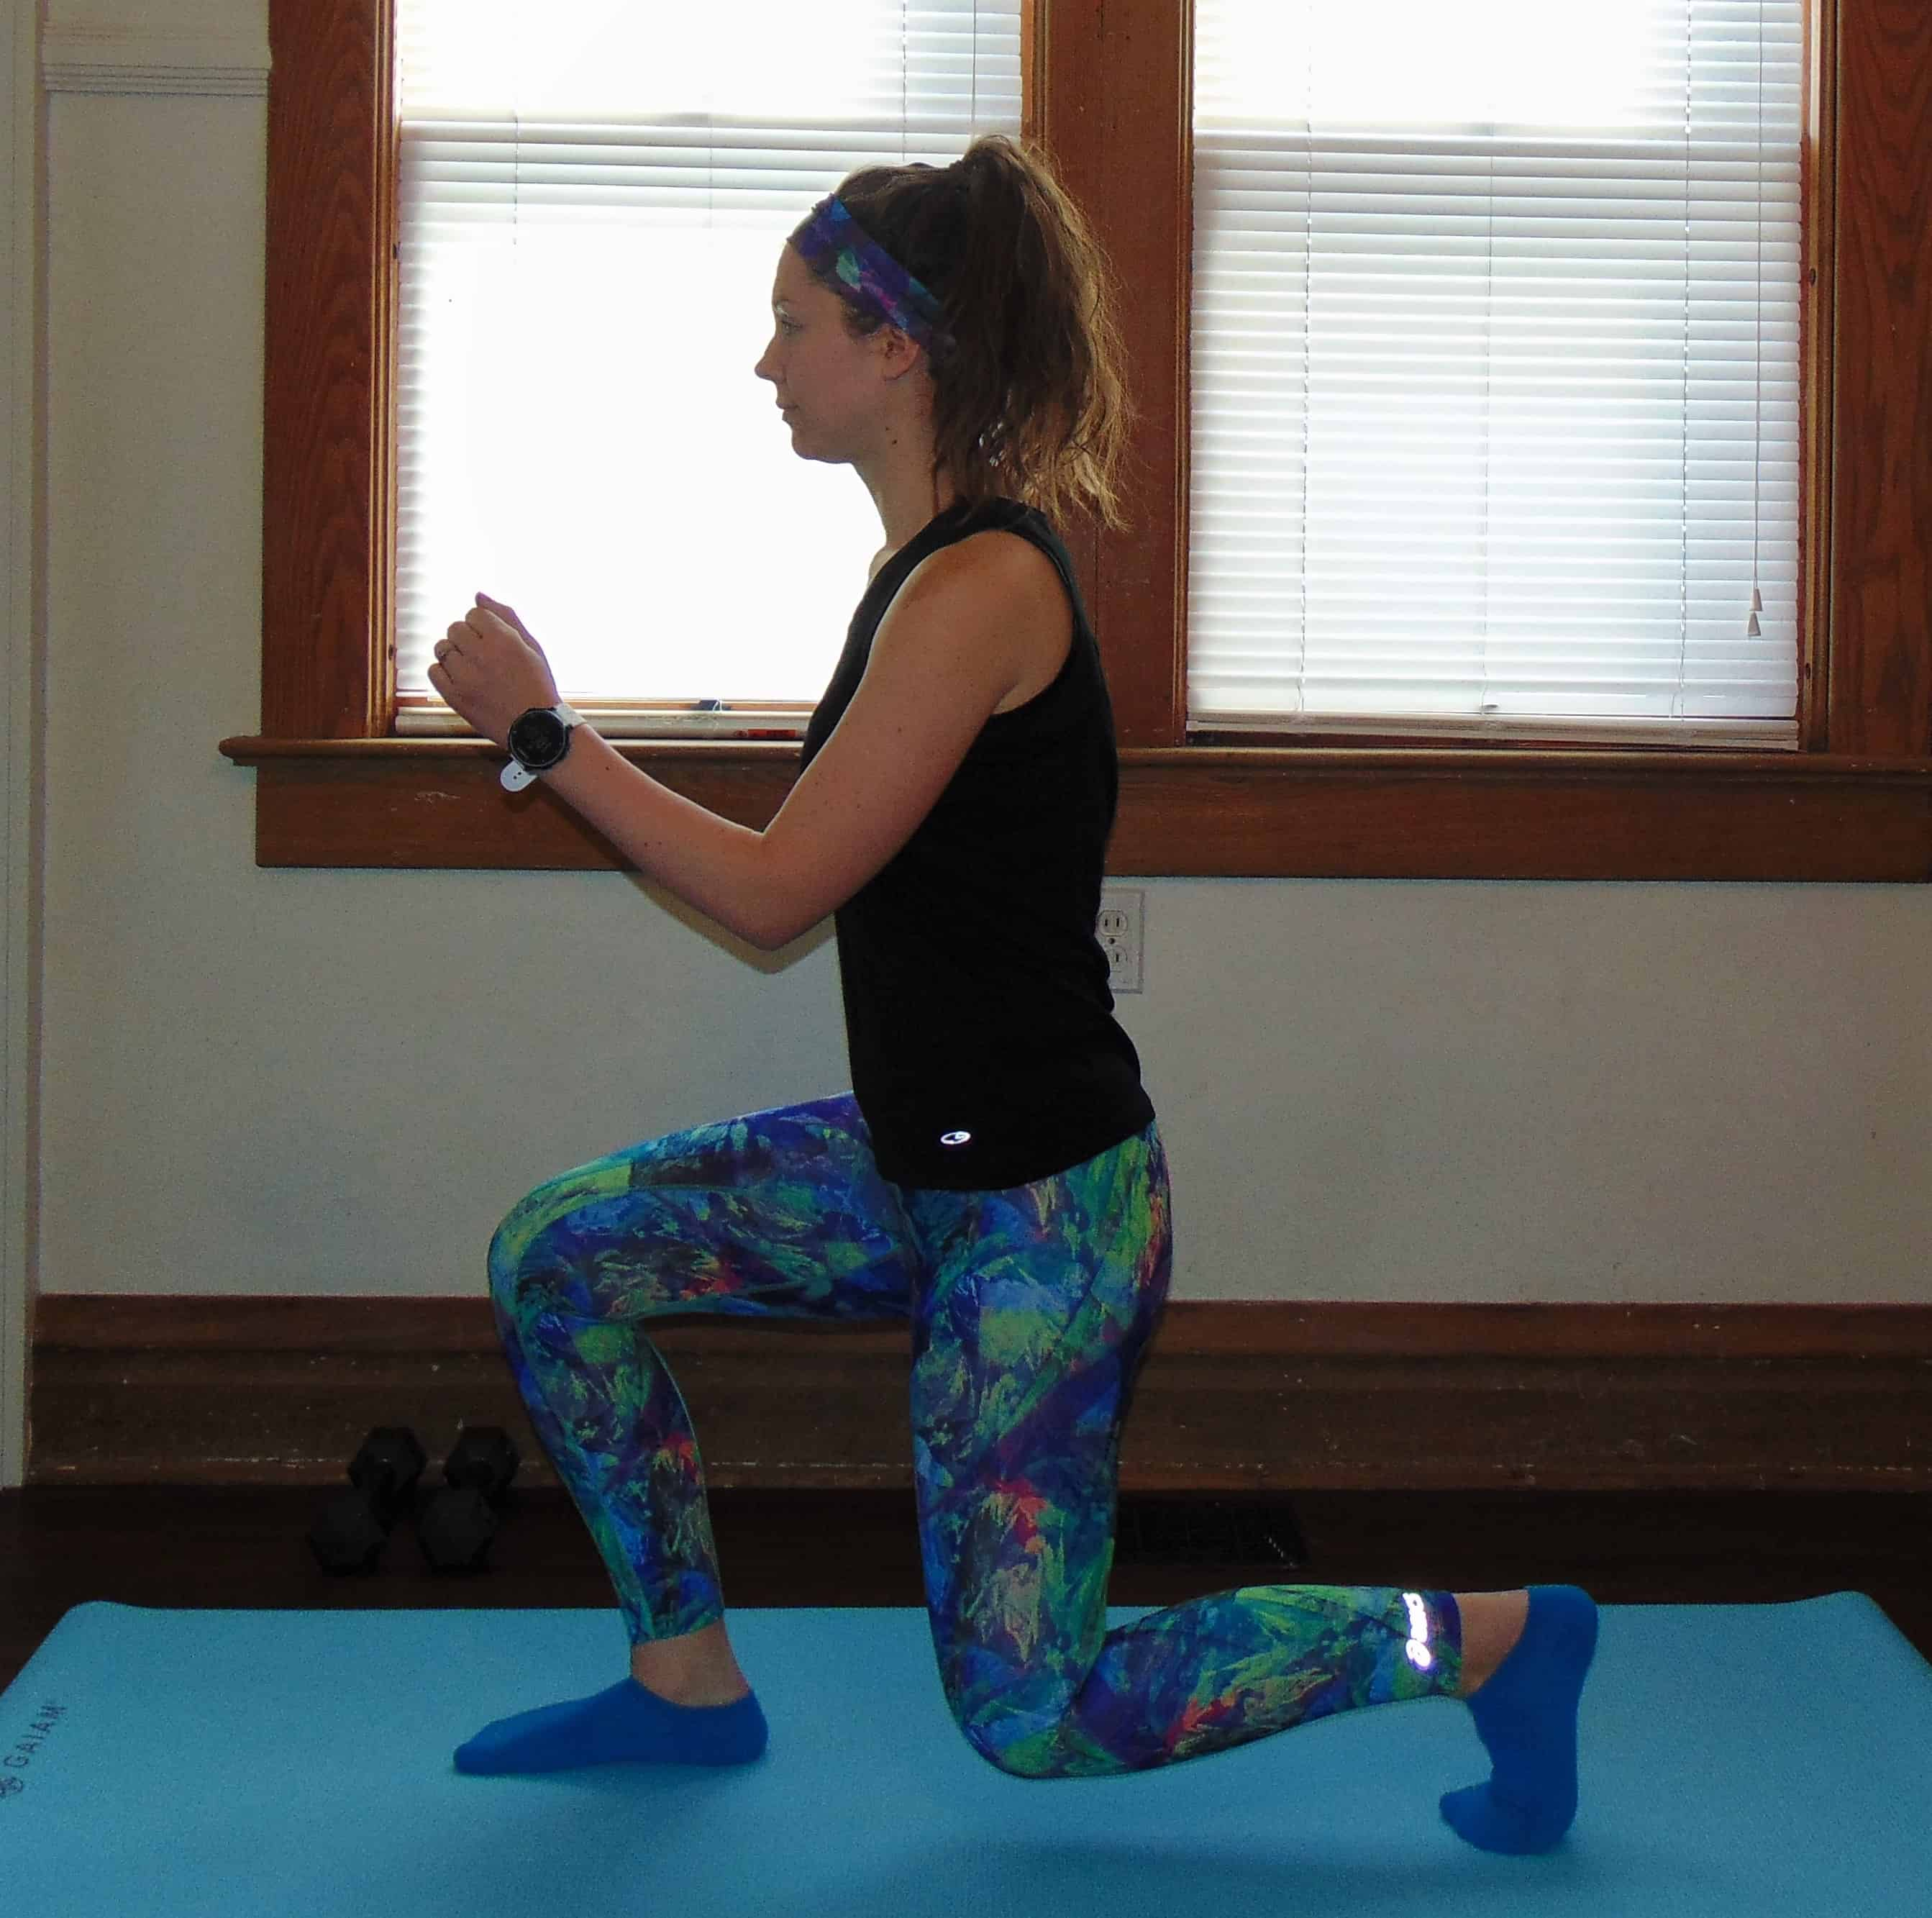 Regular strength training is a crucial part of any runner's training plan, whether you're a beginner or pro. Stay strong and injury free this training season with this at home strength workout for runners. In less than 30 minutes a week, these strength training exercises will keep you running for life.